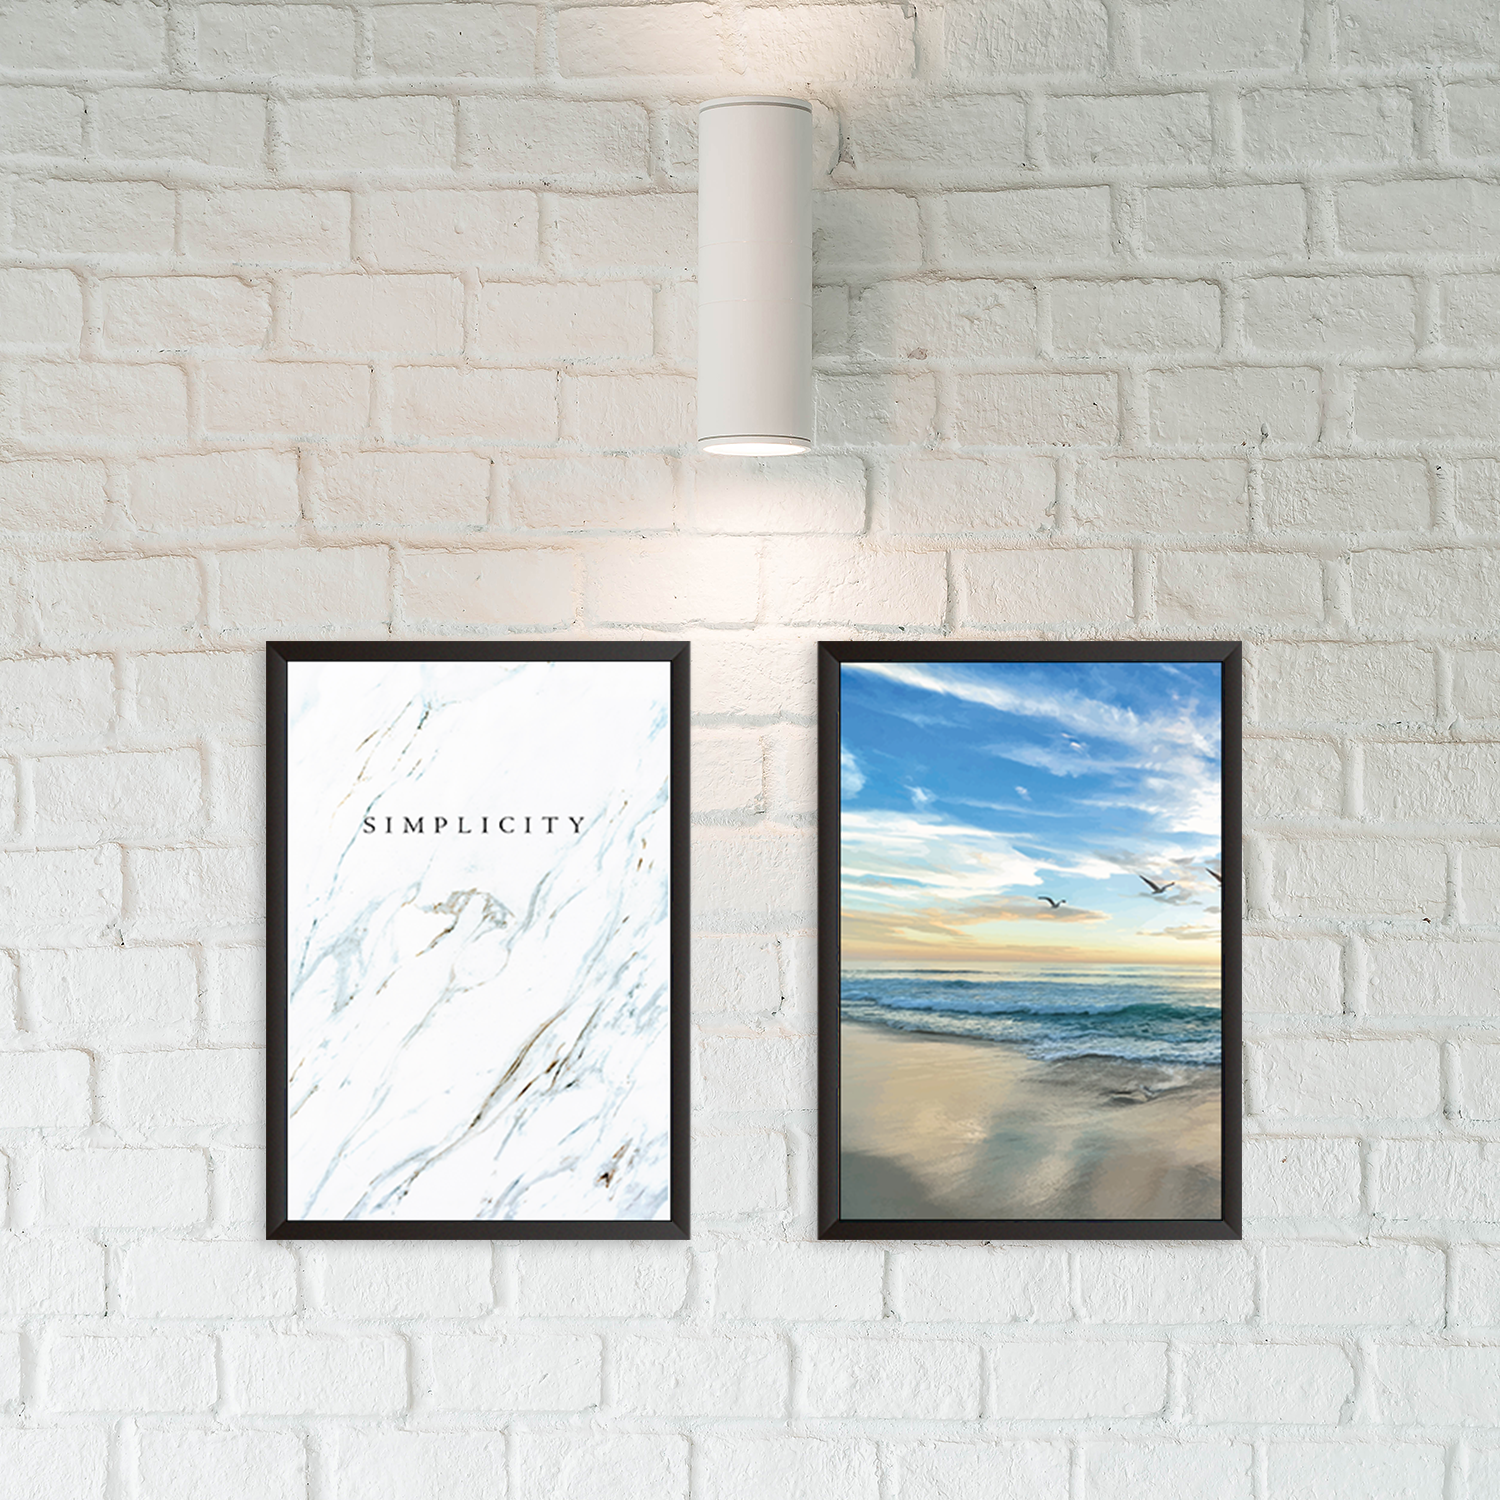 Beachy With Simplicity Quote - Set of 2 Frames